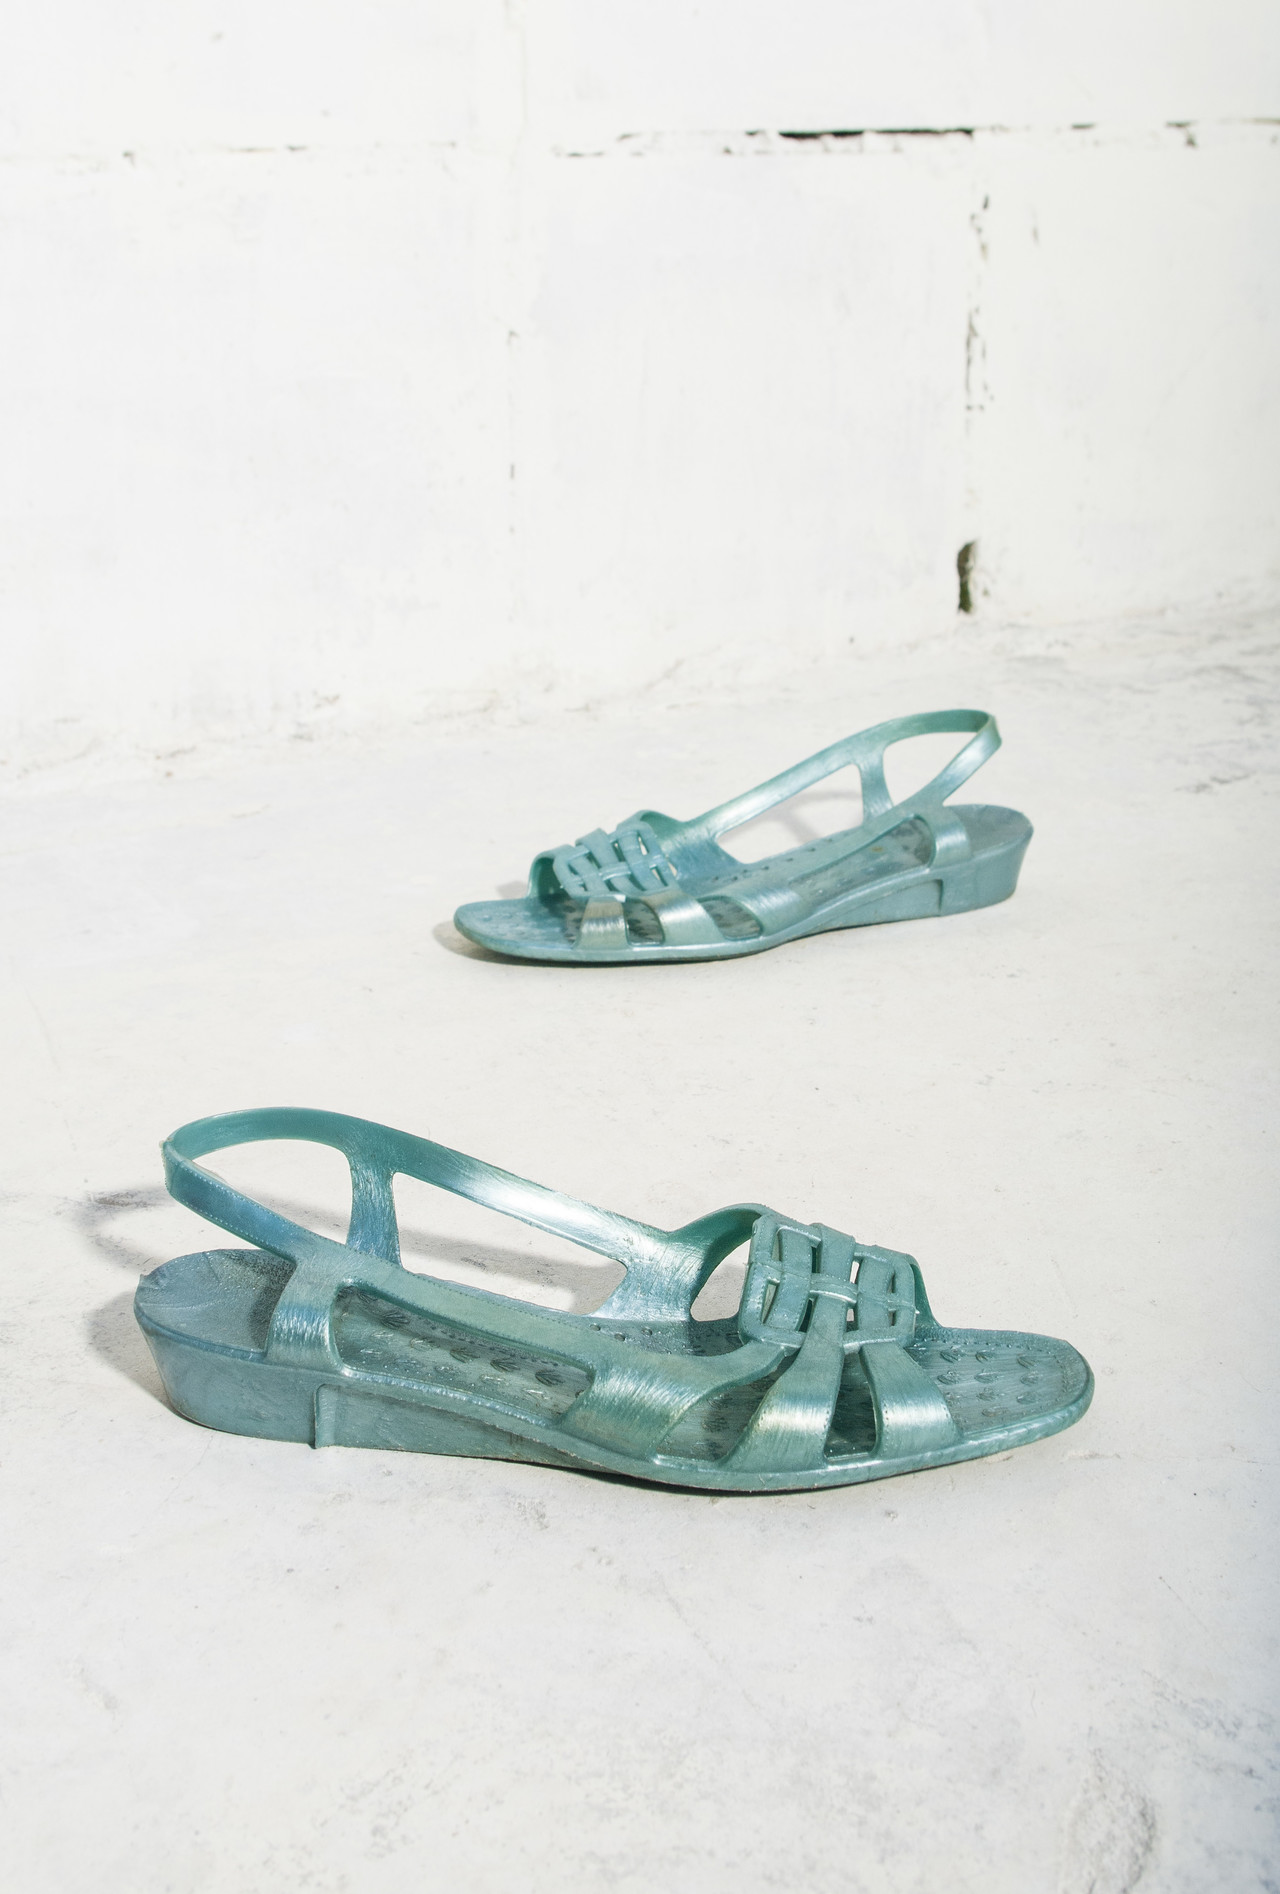 ac3ace8ed42 – 80s blue jelly sandals